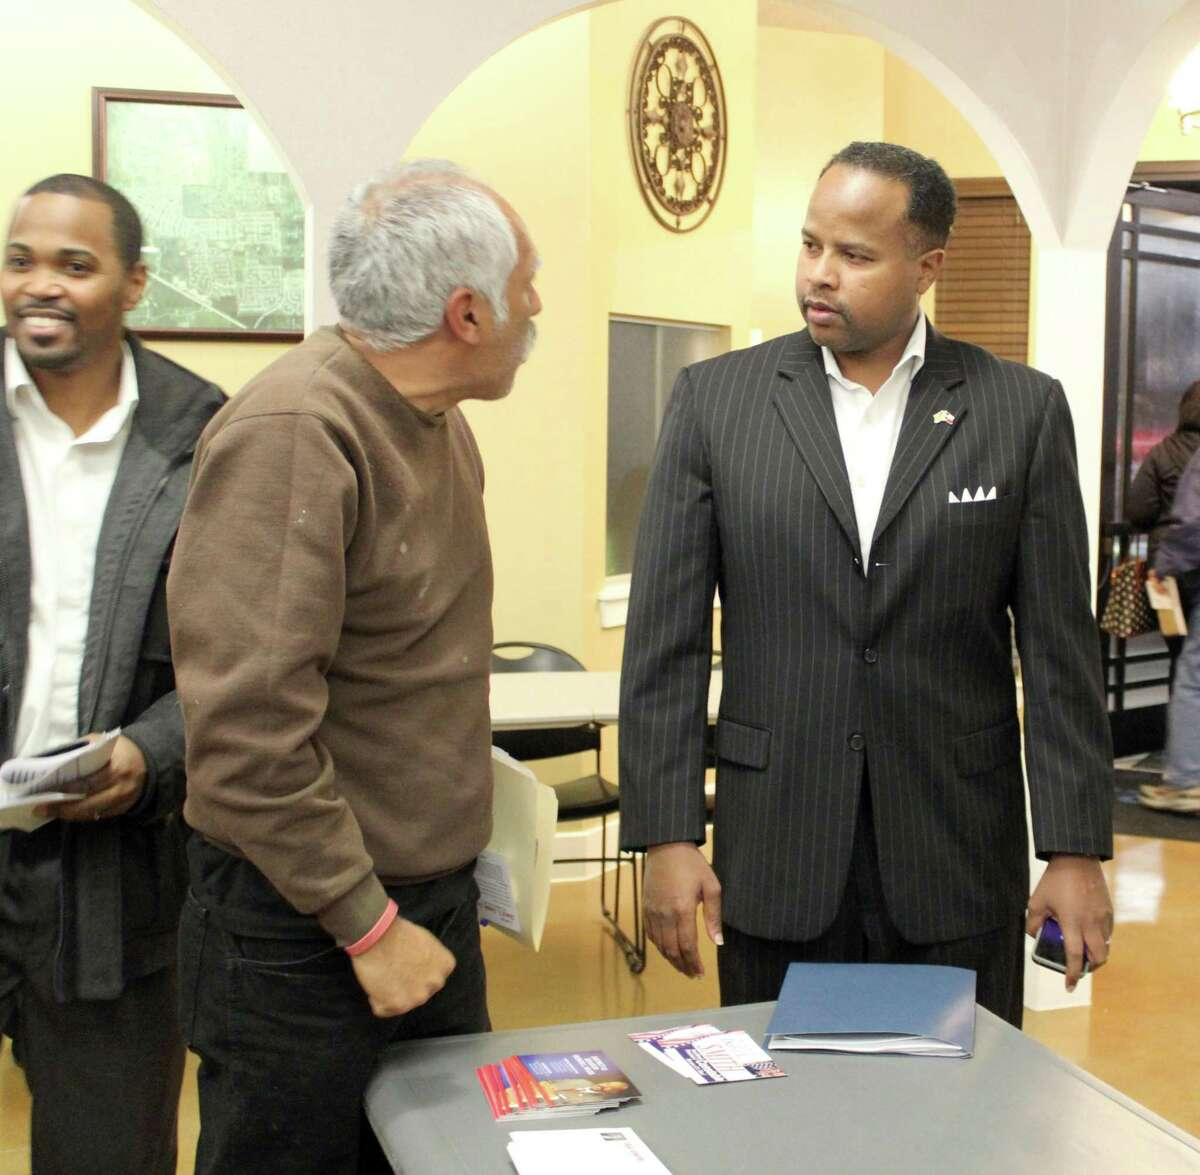 State Rep. Ron Reynolds(center) speaks with a resident at a recent town hall meeting in Fresno.